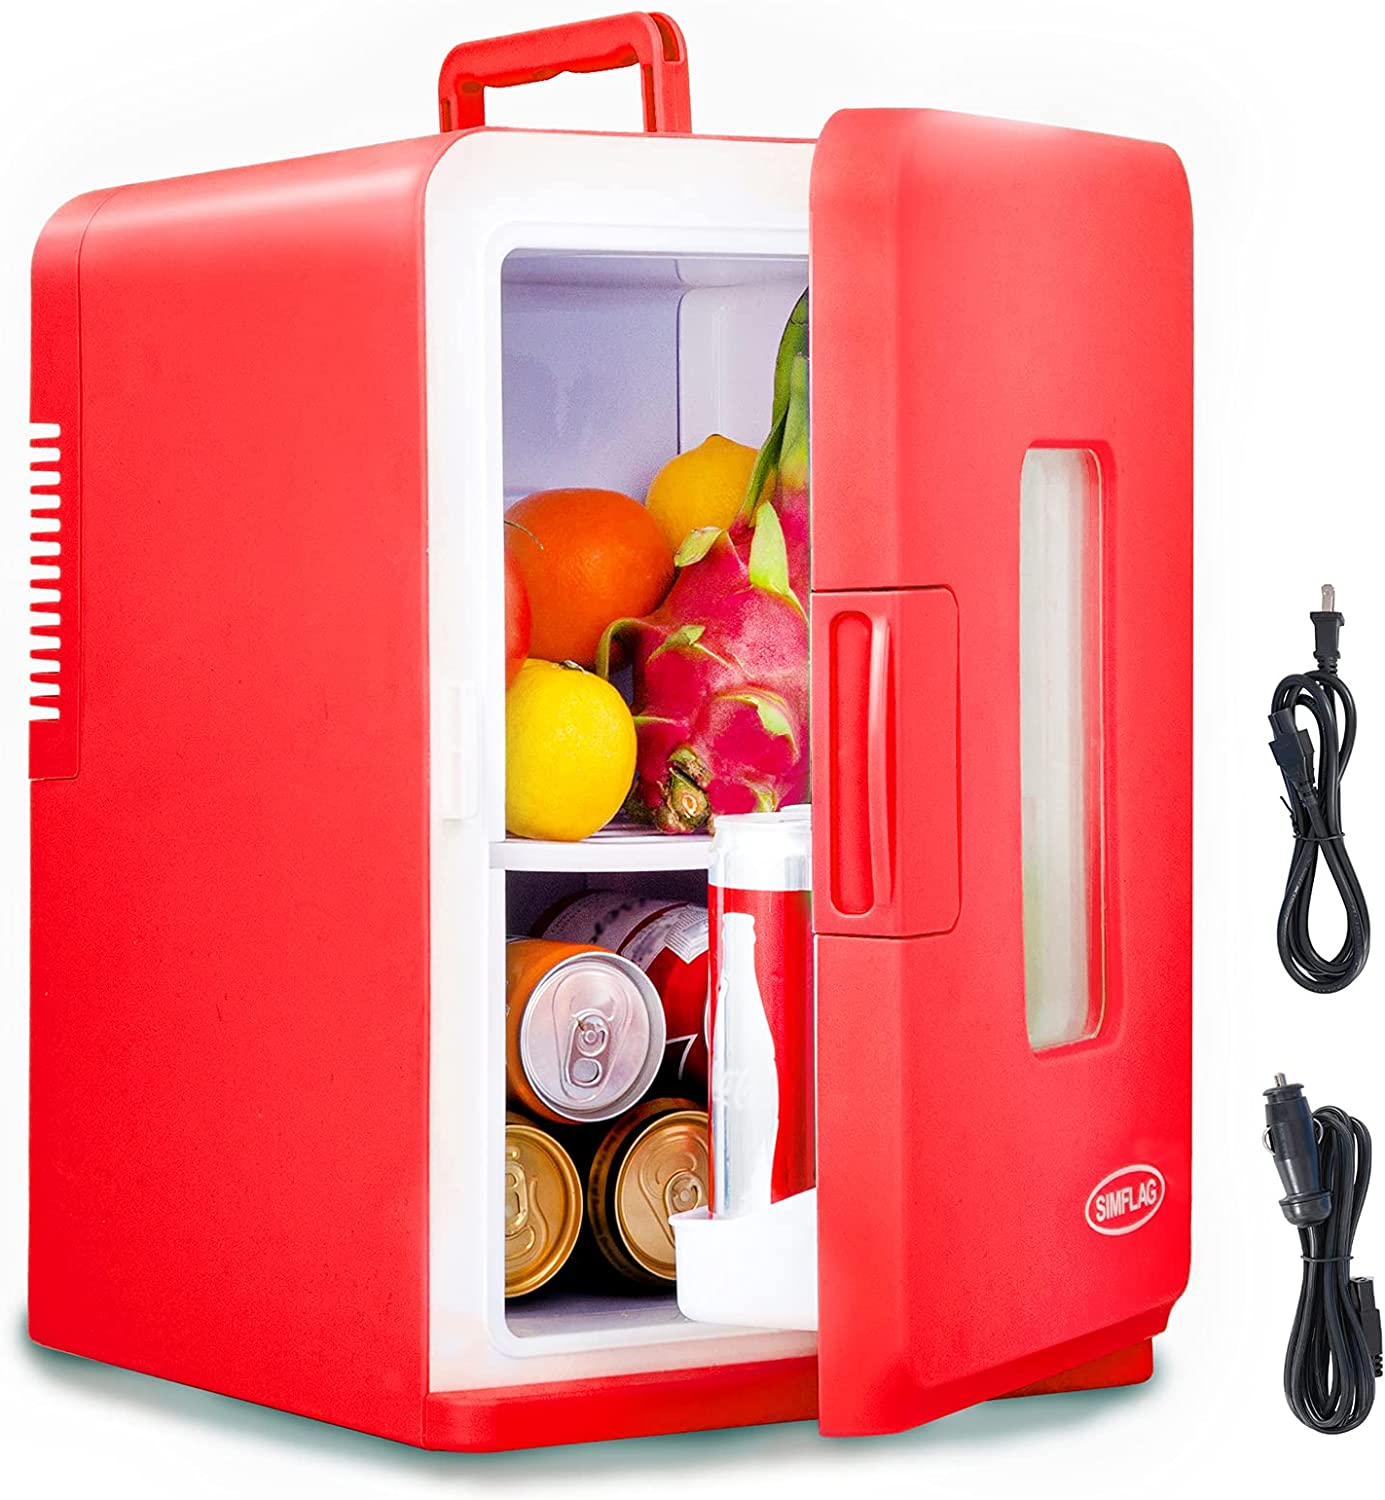 SIMFLAG Mini Fridge with Freezer 15 Liter, AC/DC Portable Fridge,Compact Cooler and Warmer Small Refridgerater for Bedroom, Home,Office,Dorm, RV,Travel, Skin Care and Foods Storage (Red)